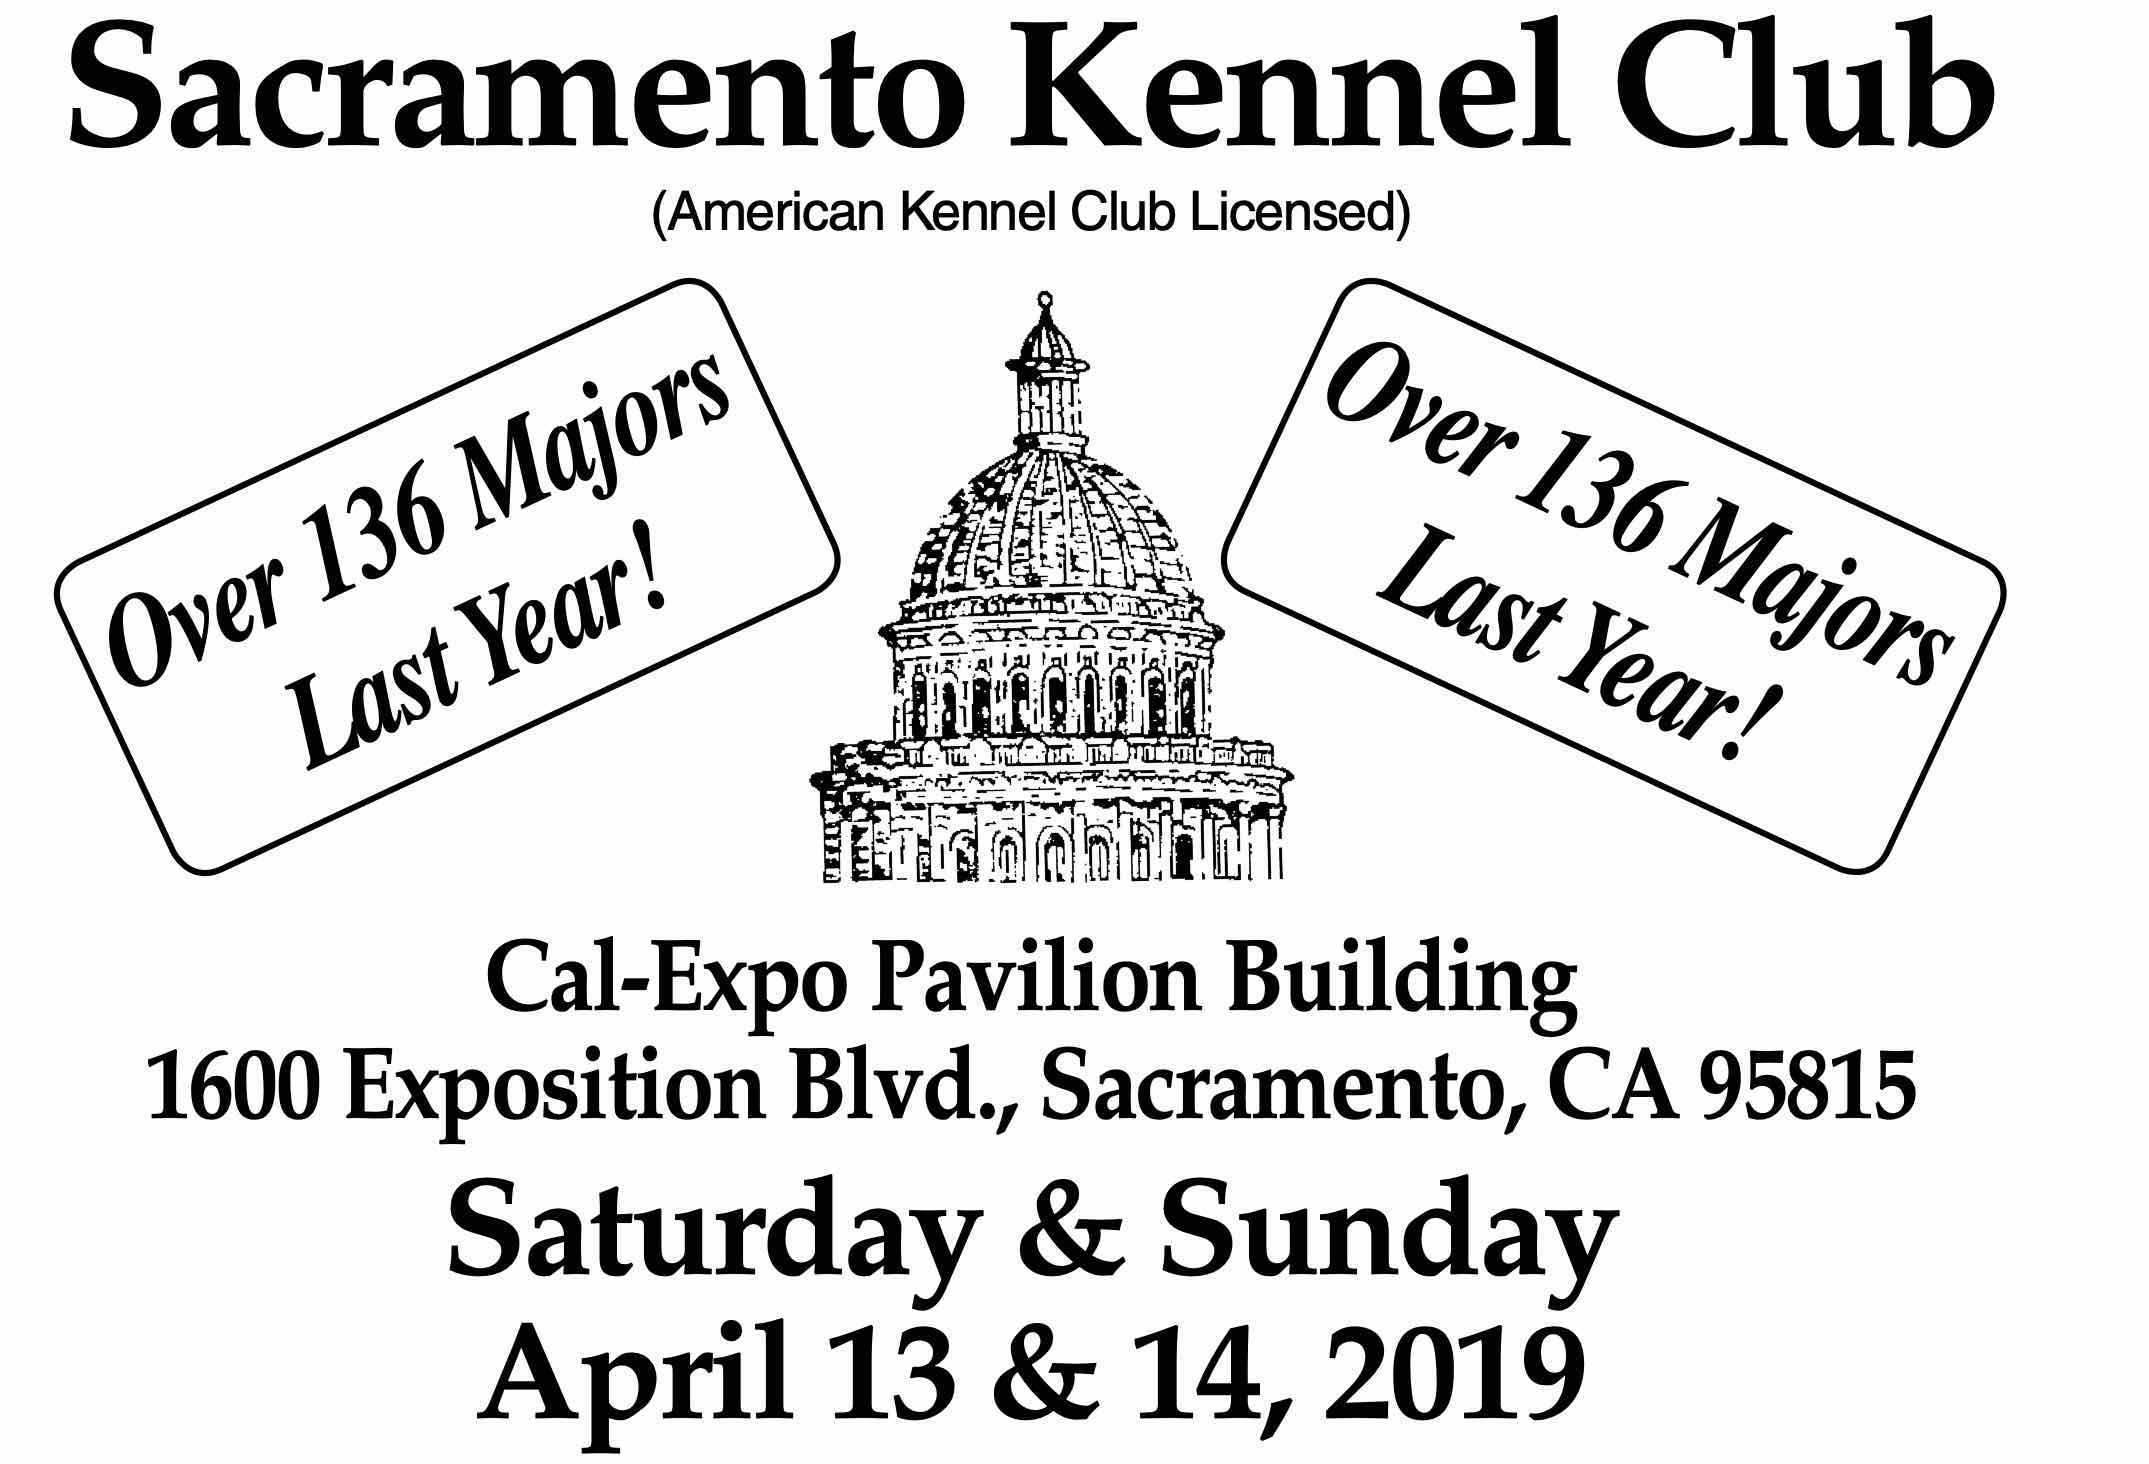 2019 Sacramento Kennel Club premium list